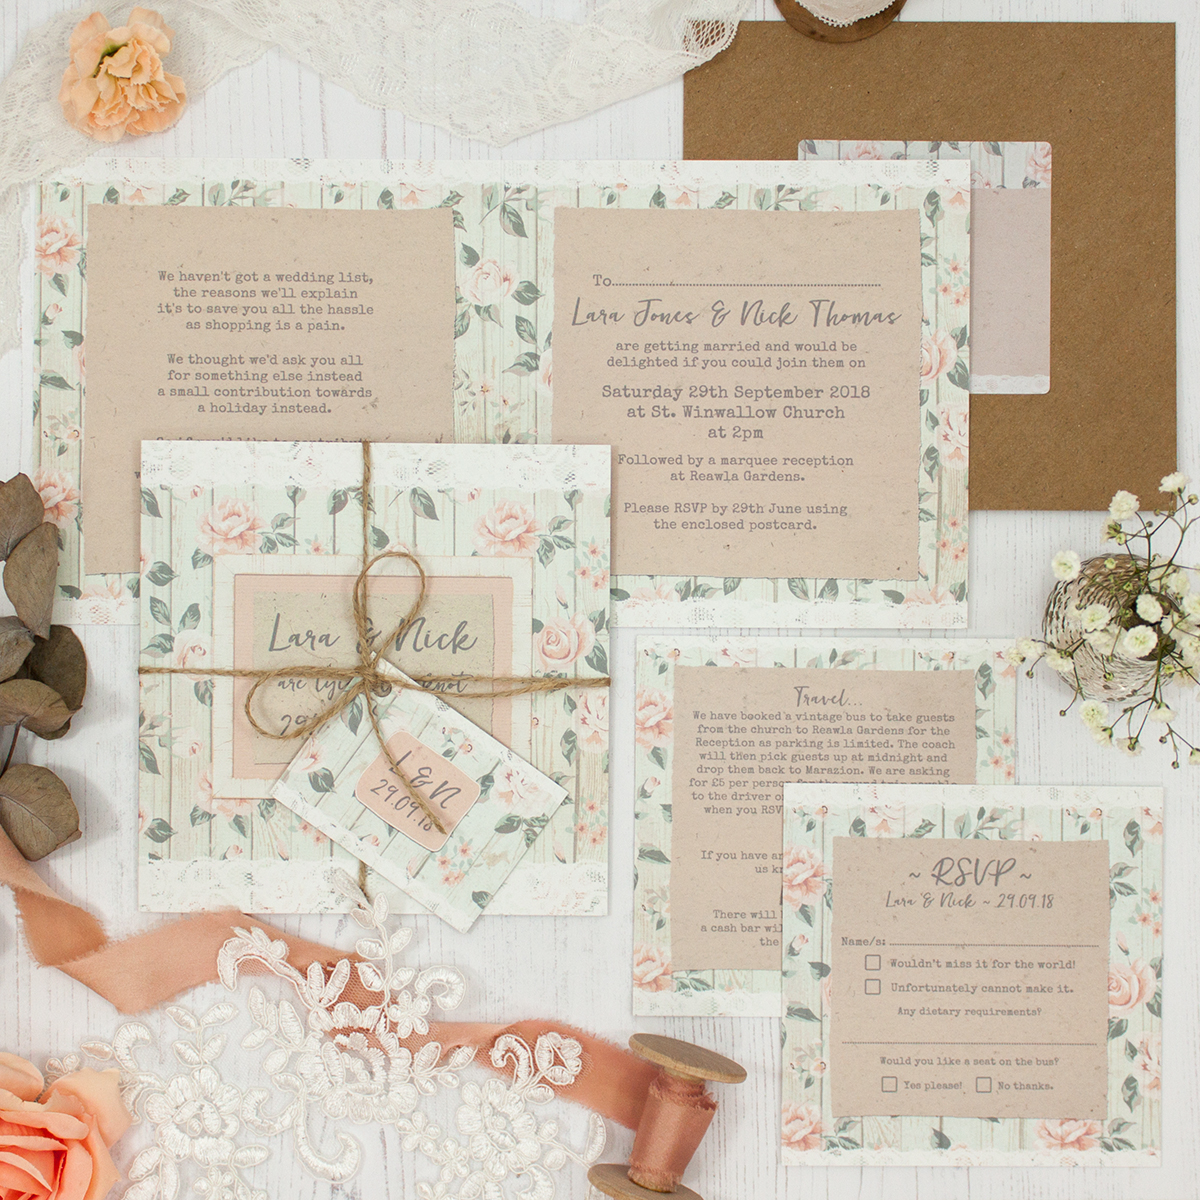 Apricot Sunrise Wedding showing invitation